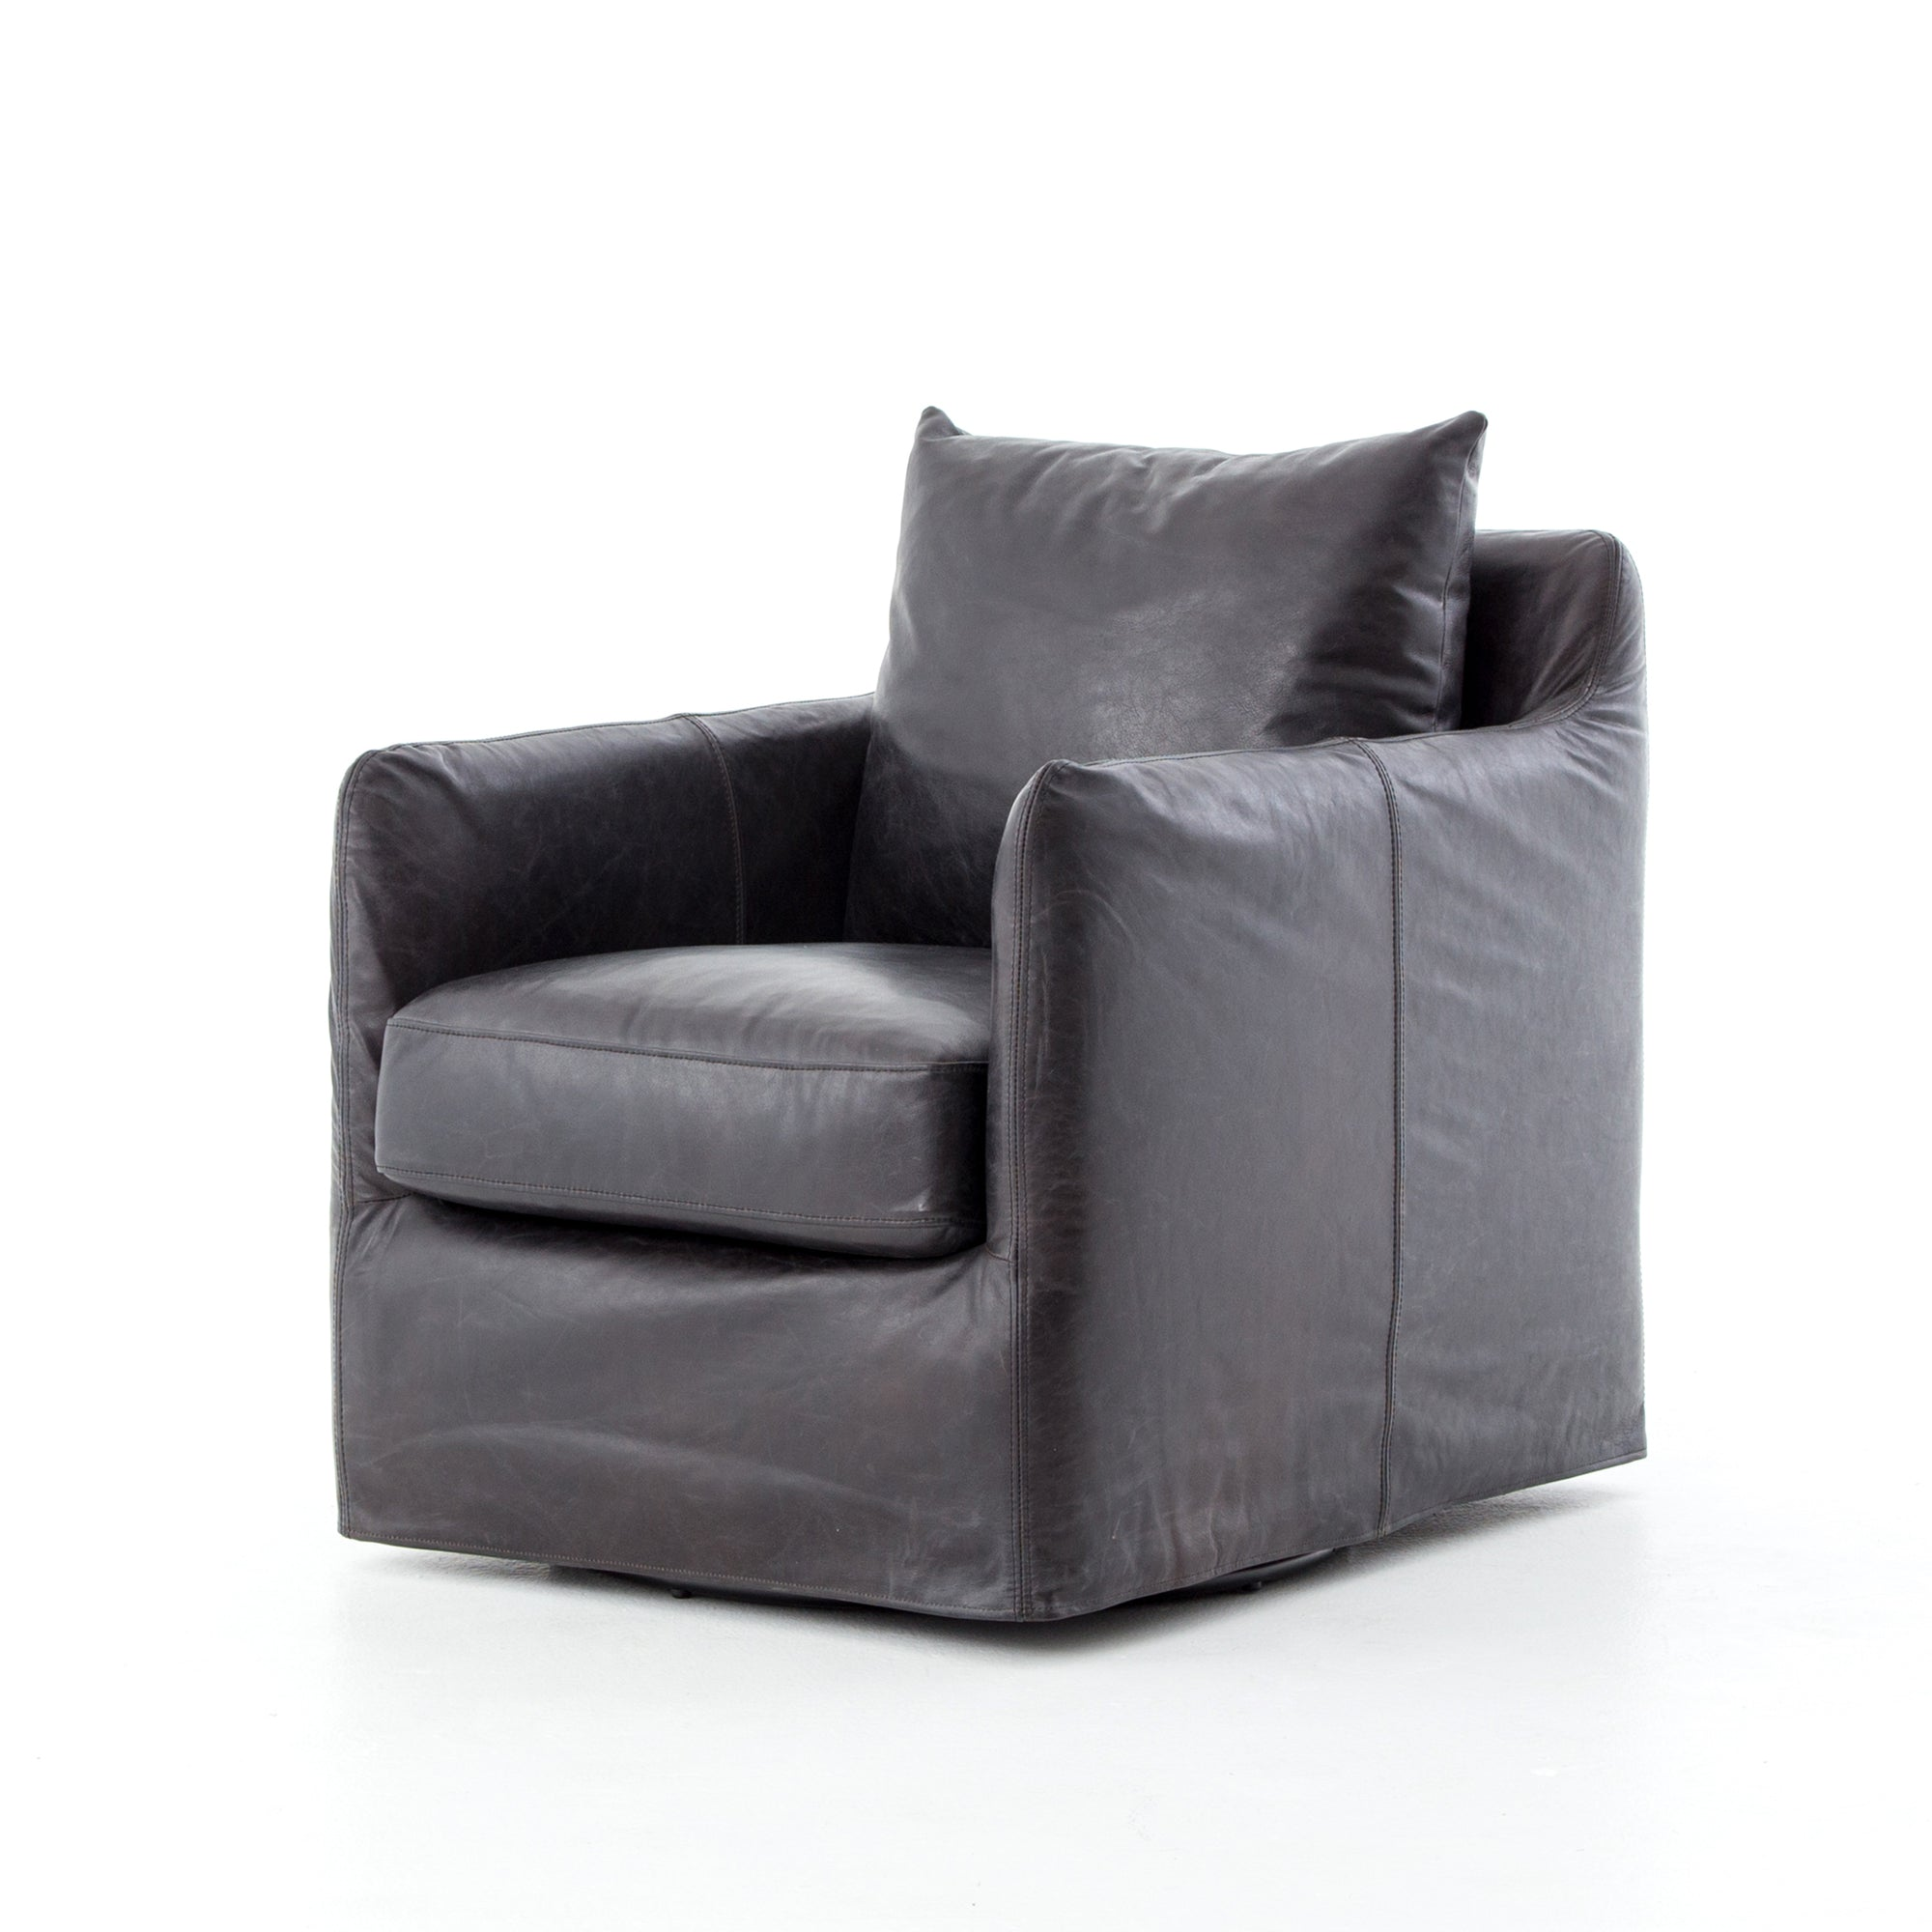 Banks Swivel Chair - Rider Black